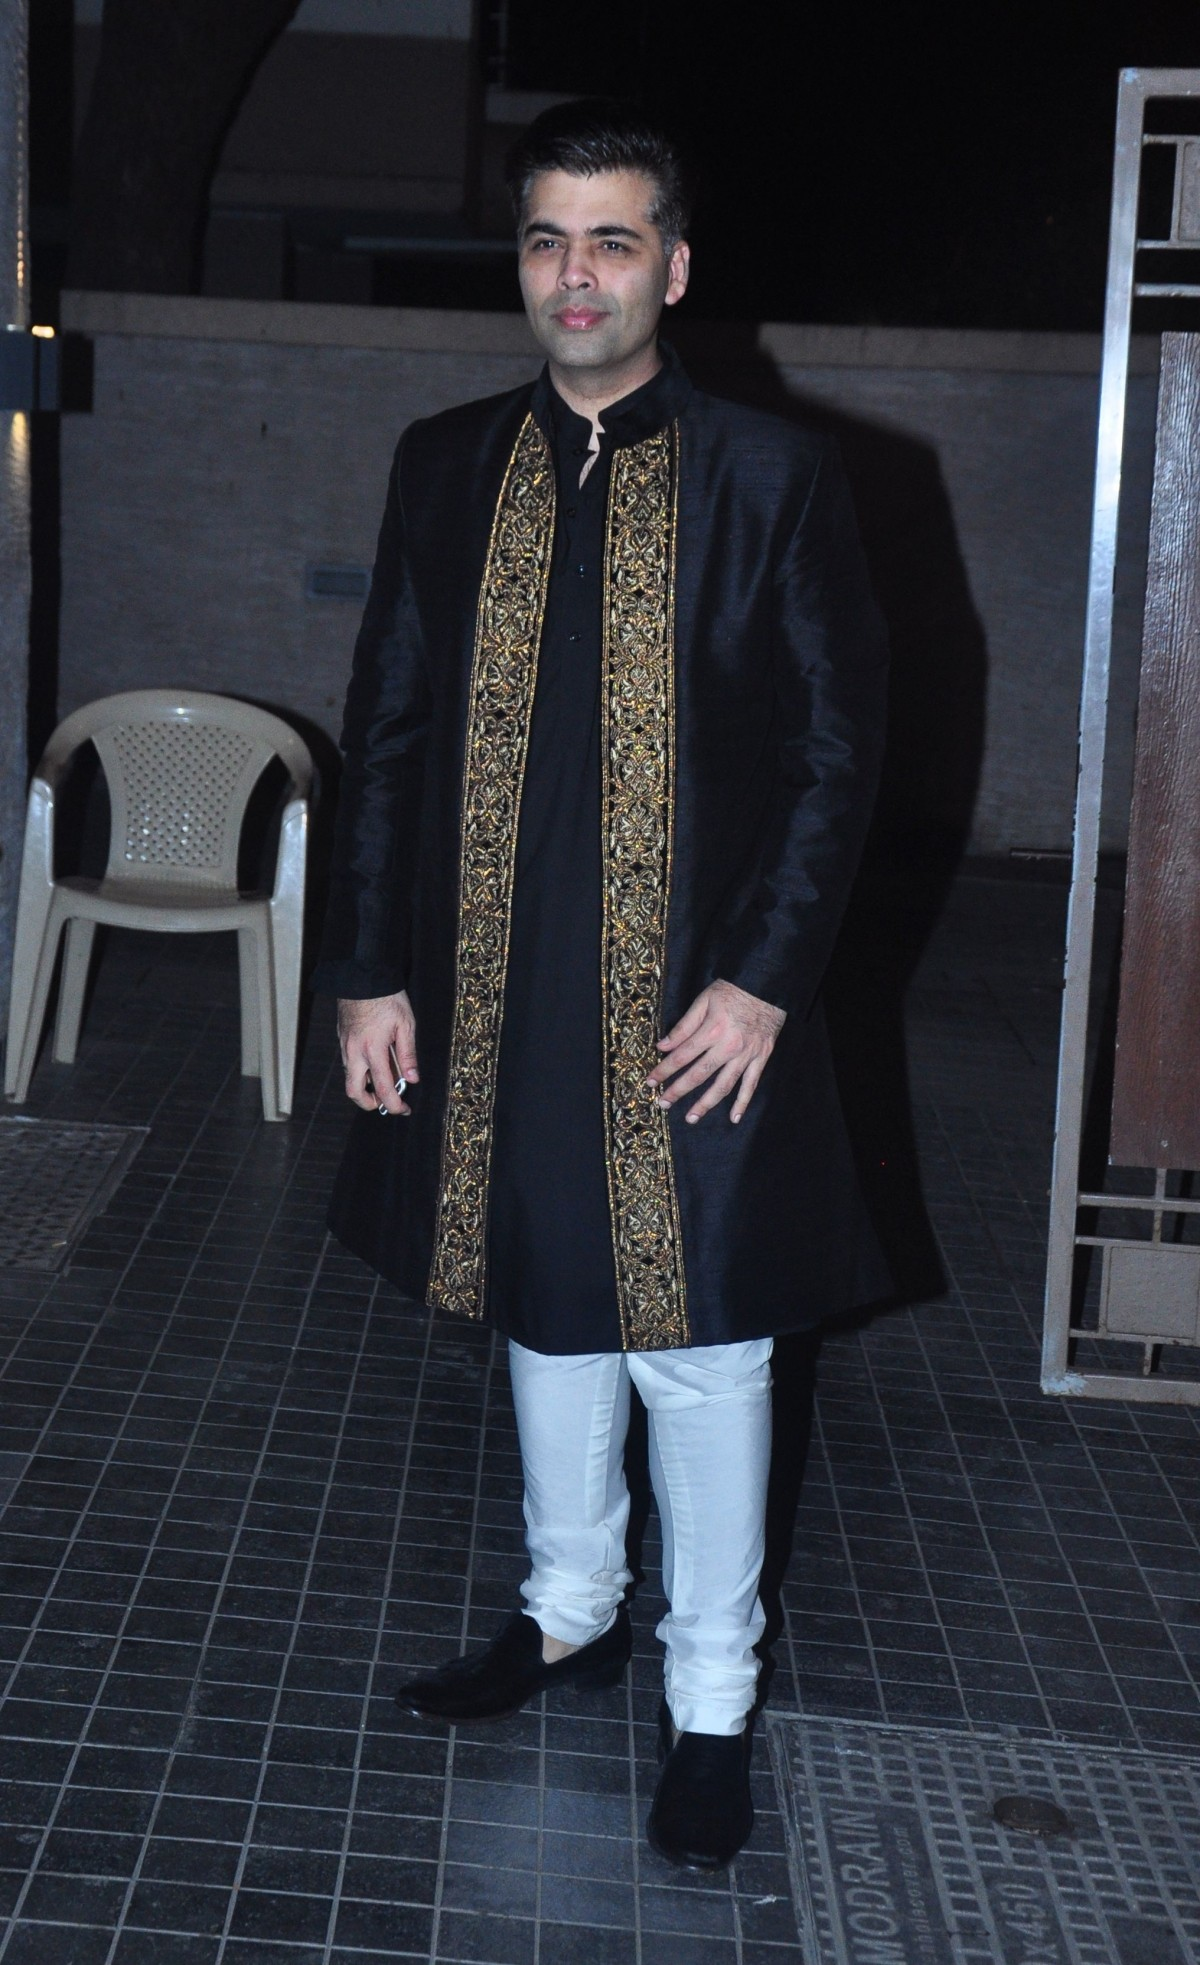 Soha Ali Khan and Kunal Khemu Wedding Reception